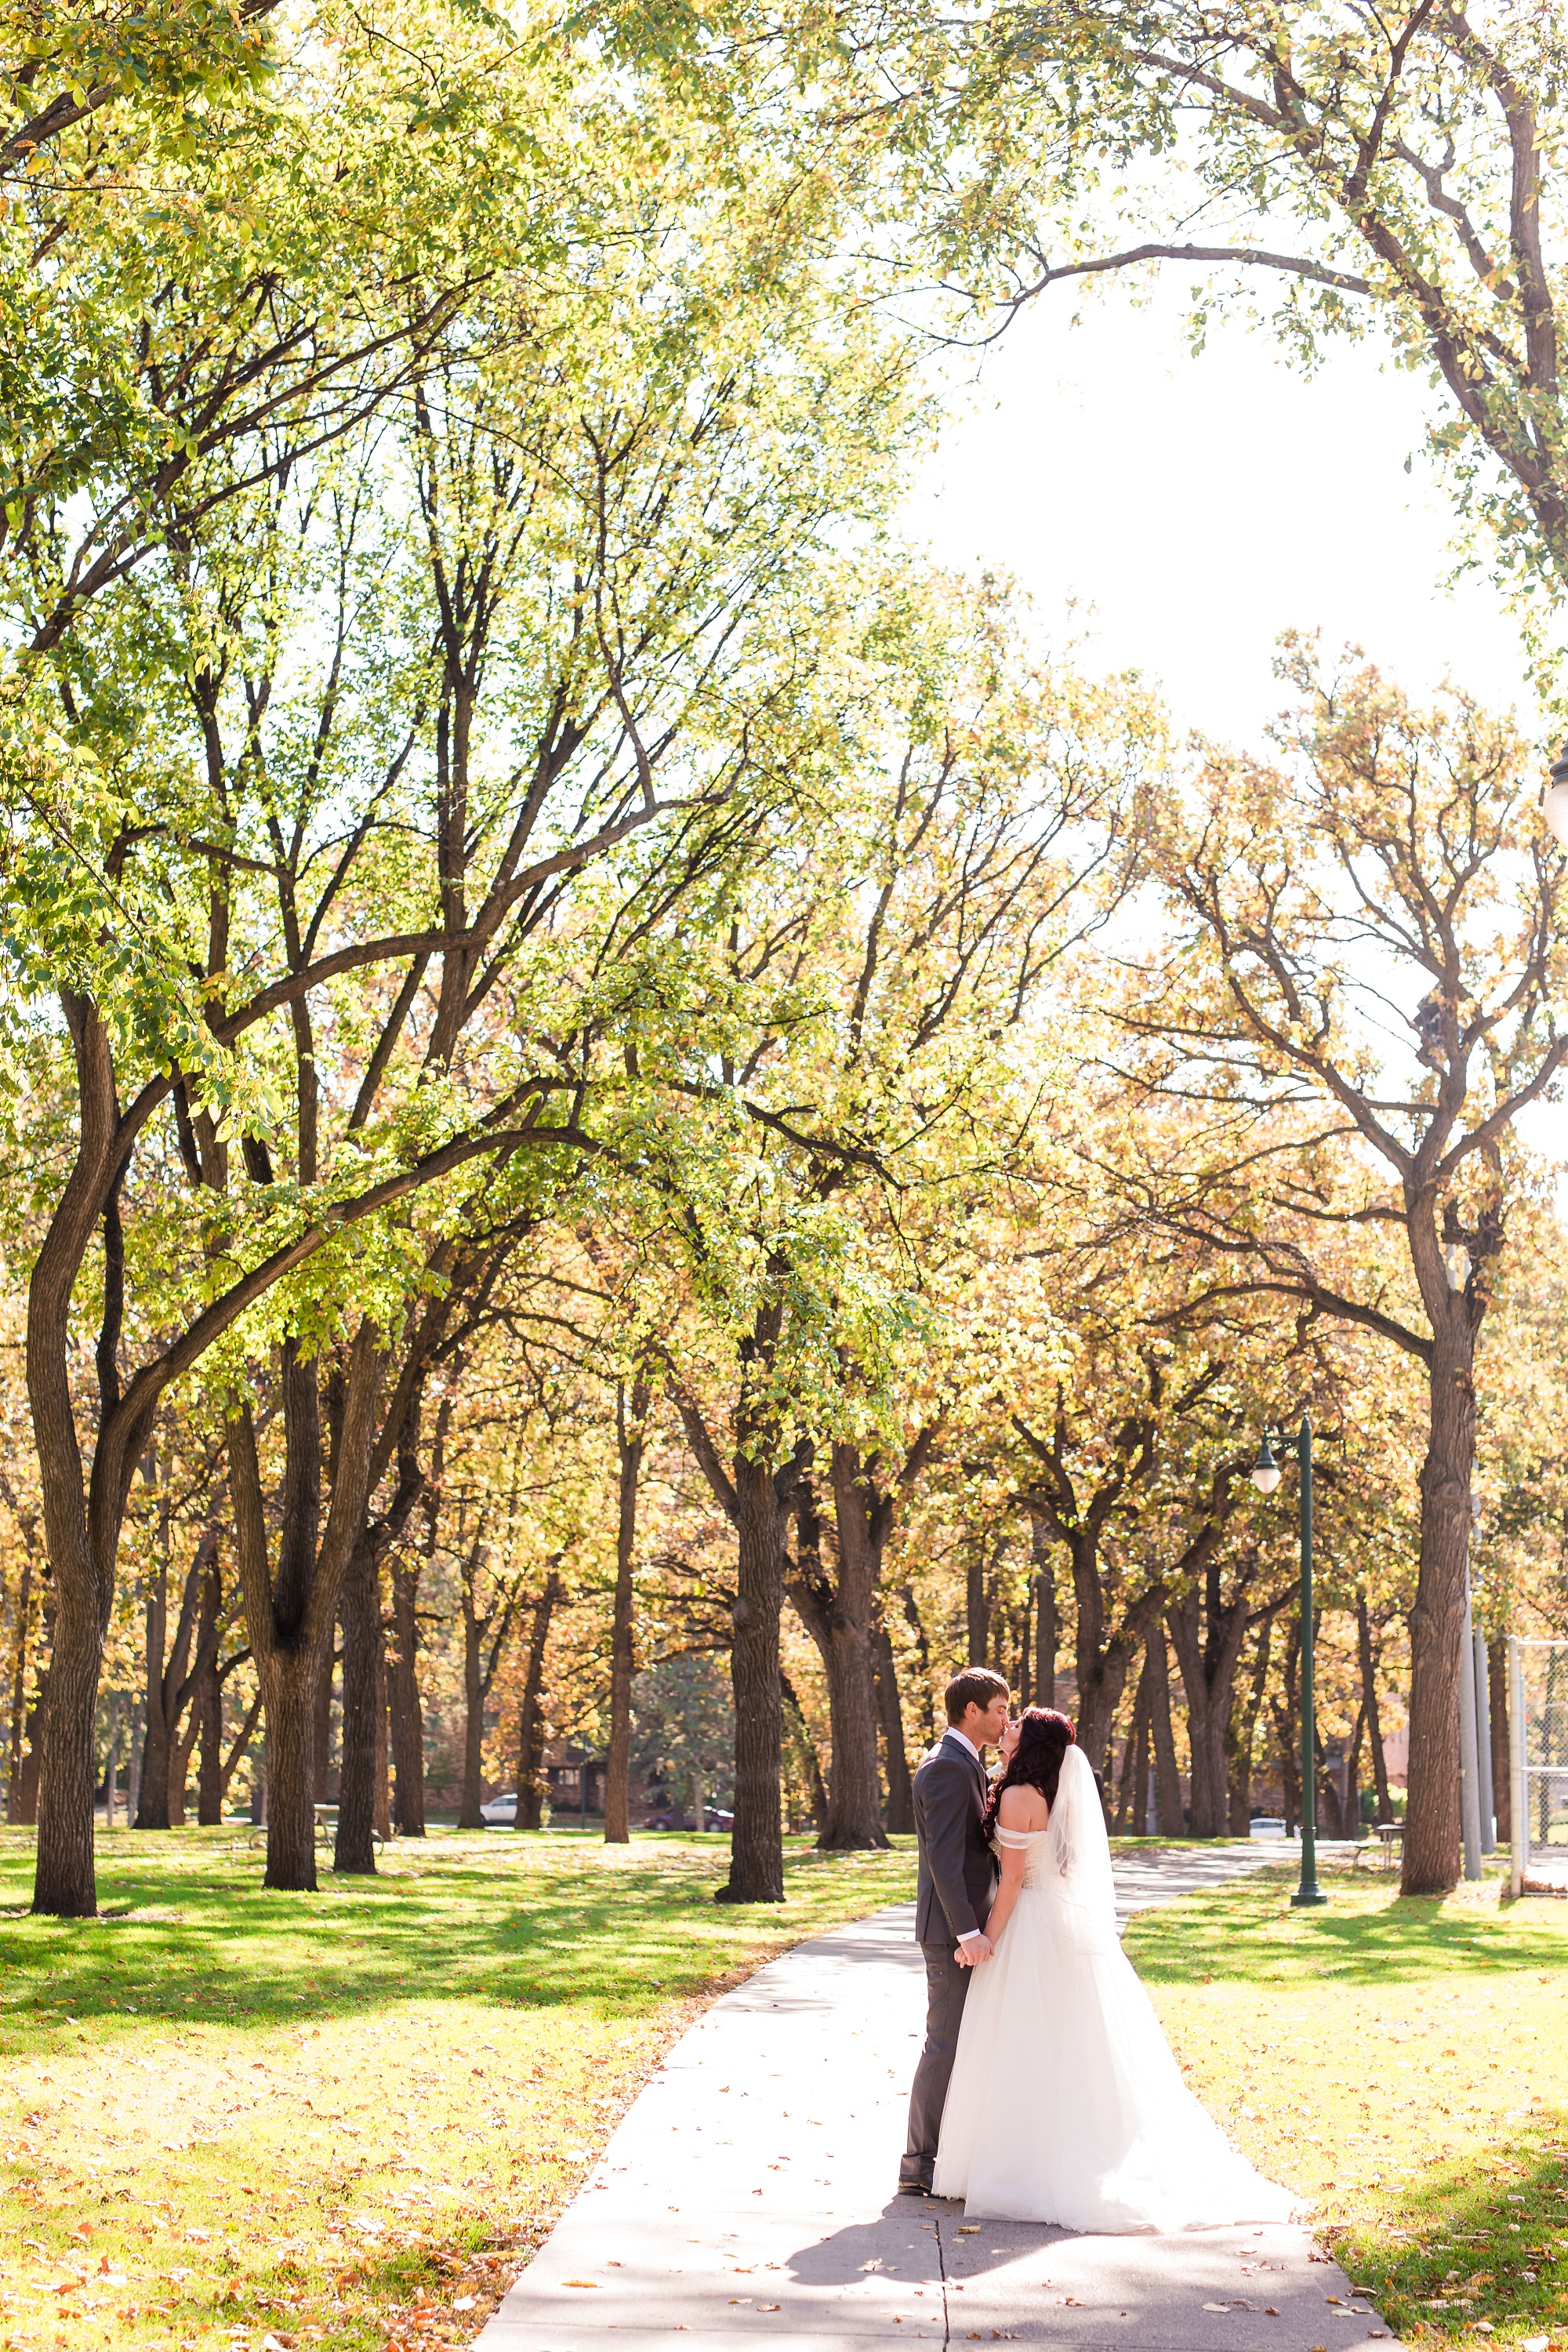 Downtown Fargo Disney Themed Wedding by Amber Langerud Photography | Bride & Groom Island Park